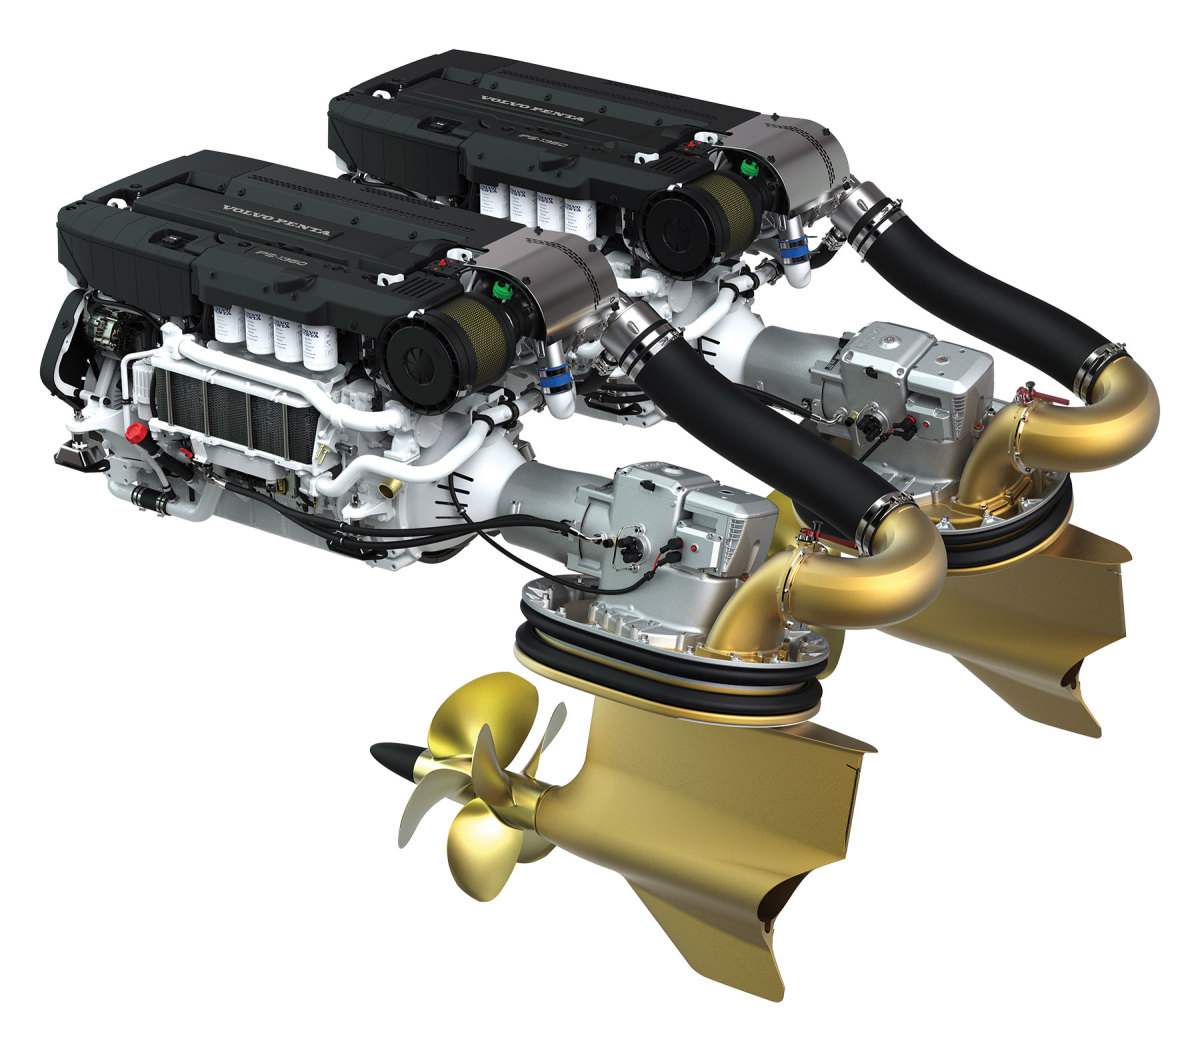 Fifteen years after introducing IPS, Volvo Penta announced last year that it had installed 30,000 units.